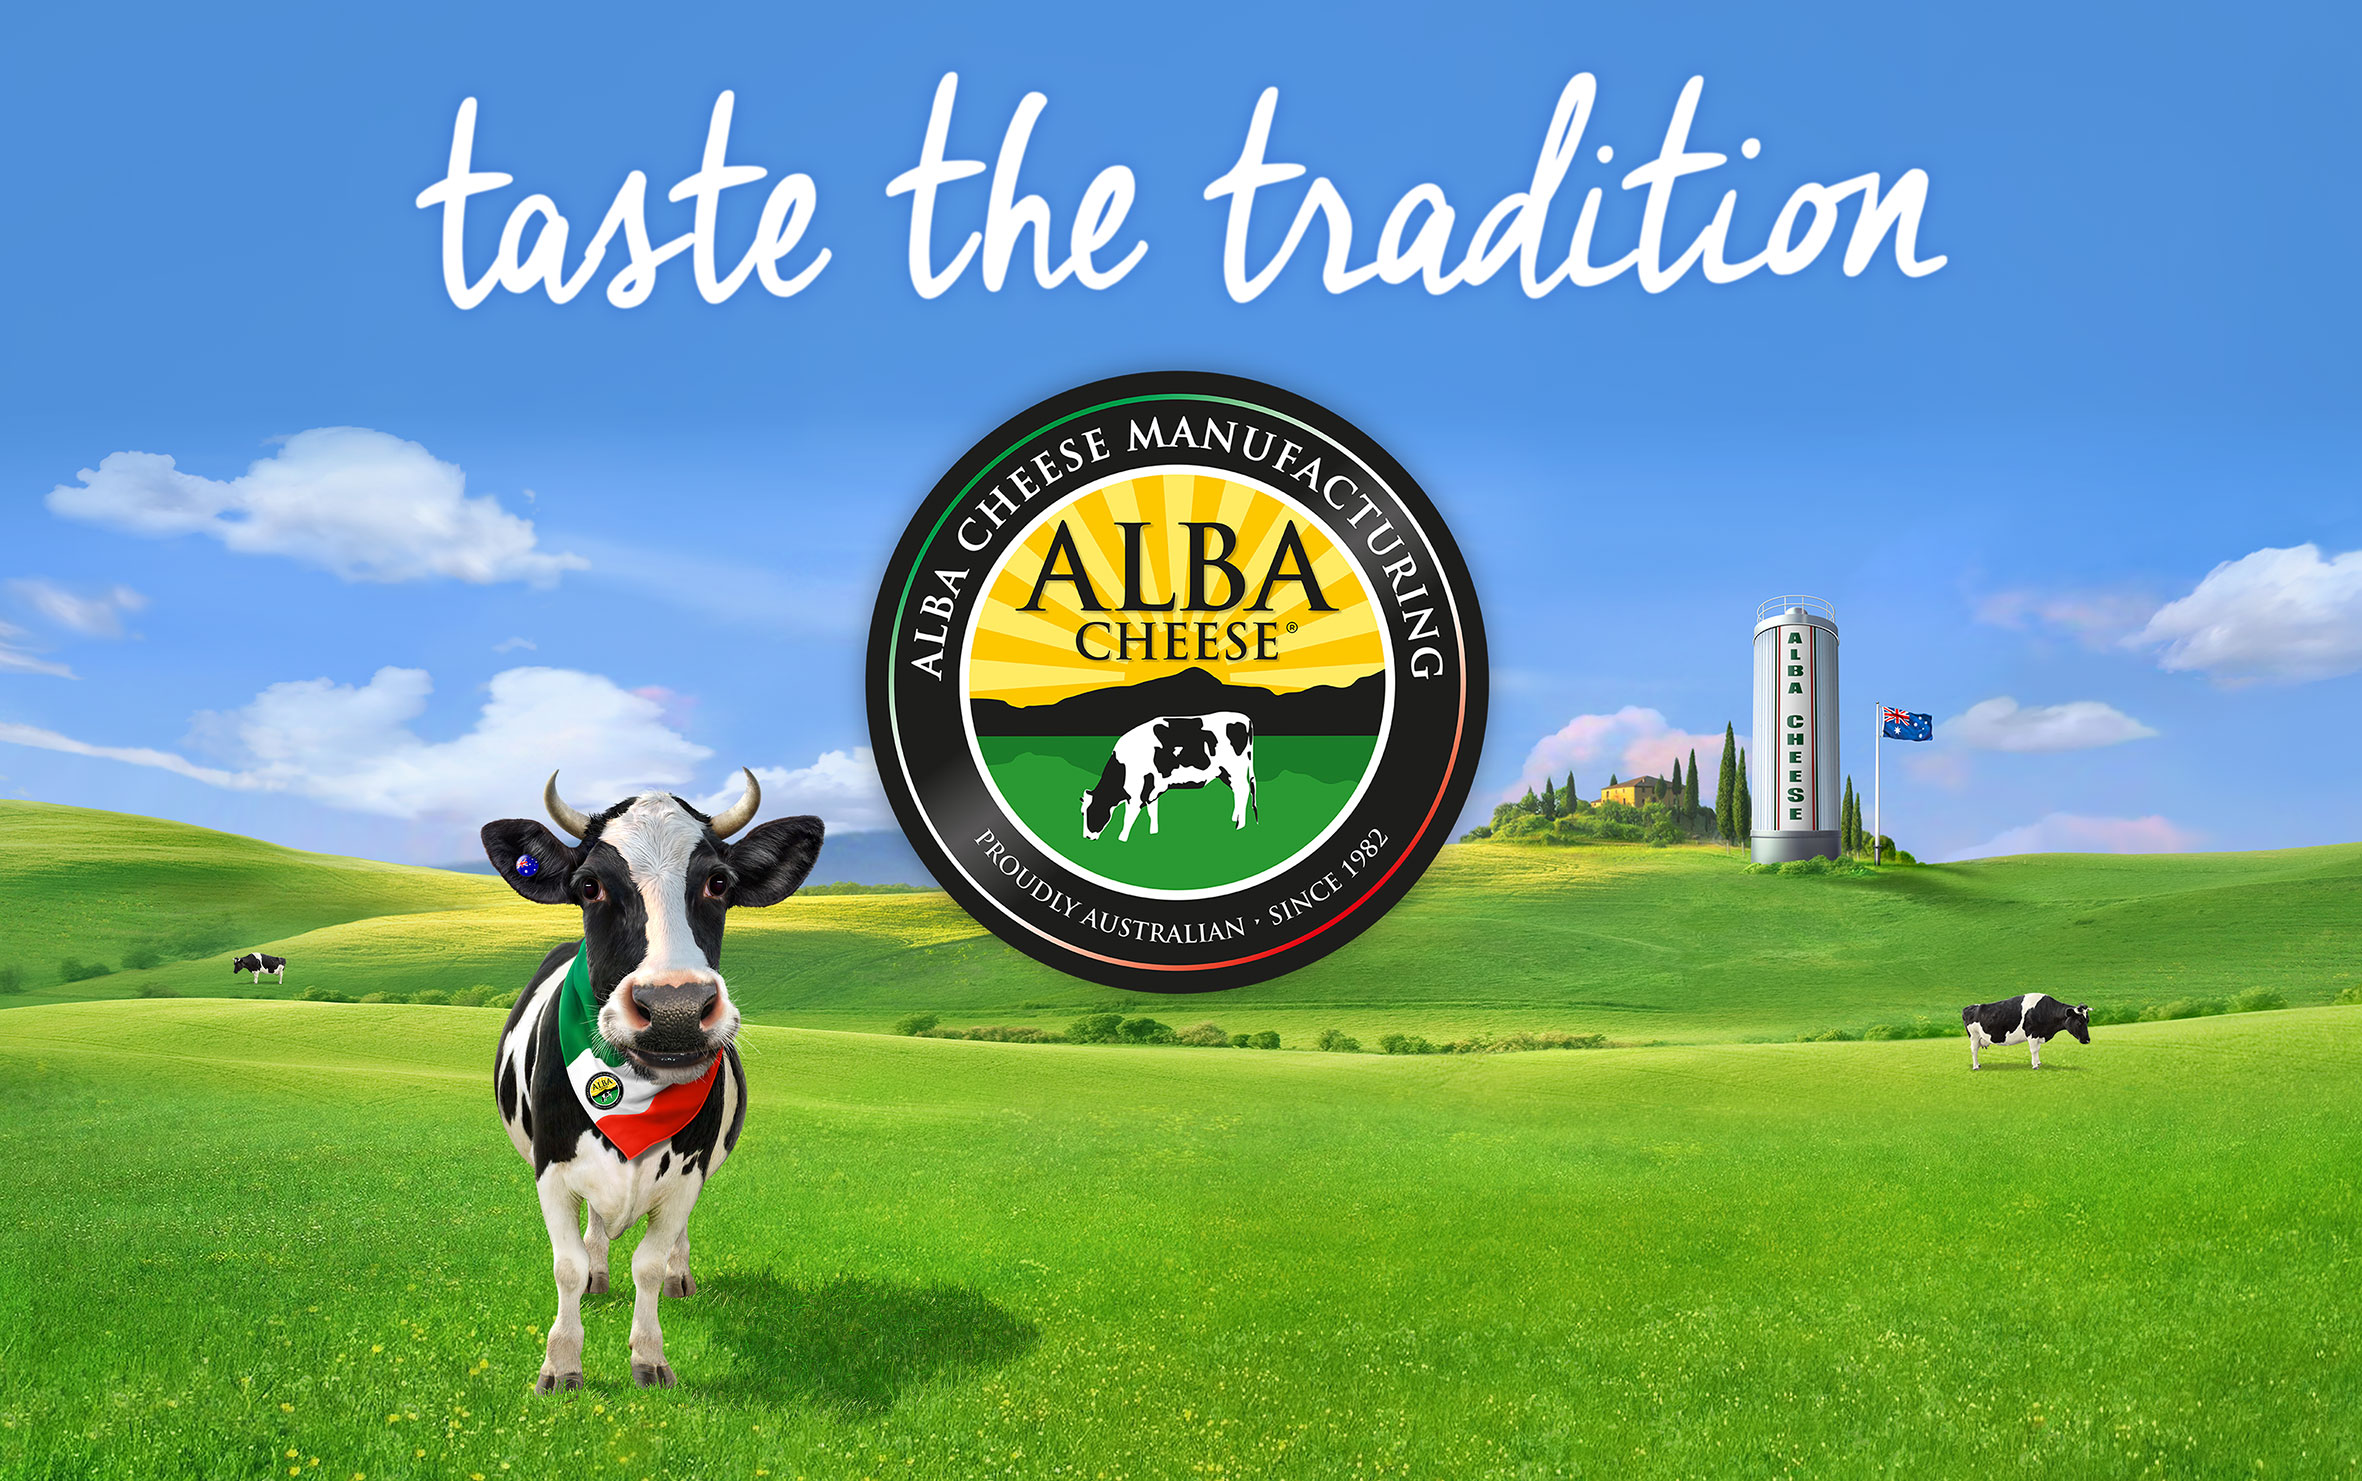 Alba-Cheese-Cow-Fields-Illustration-FA-For-Web-.jpg